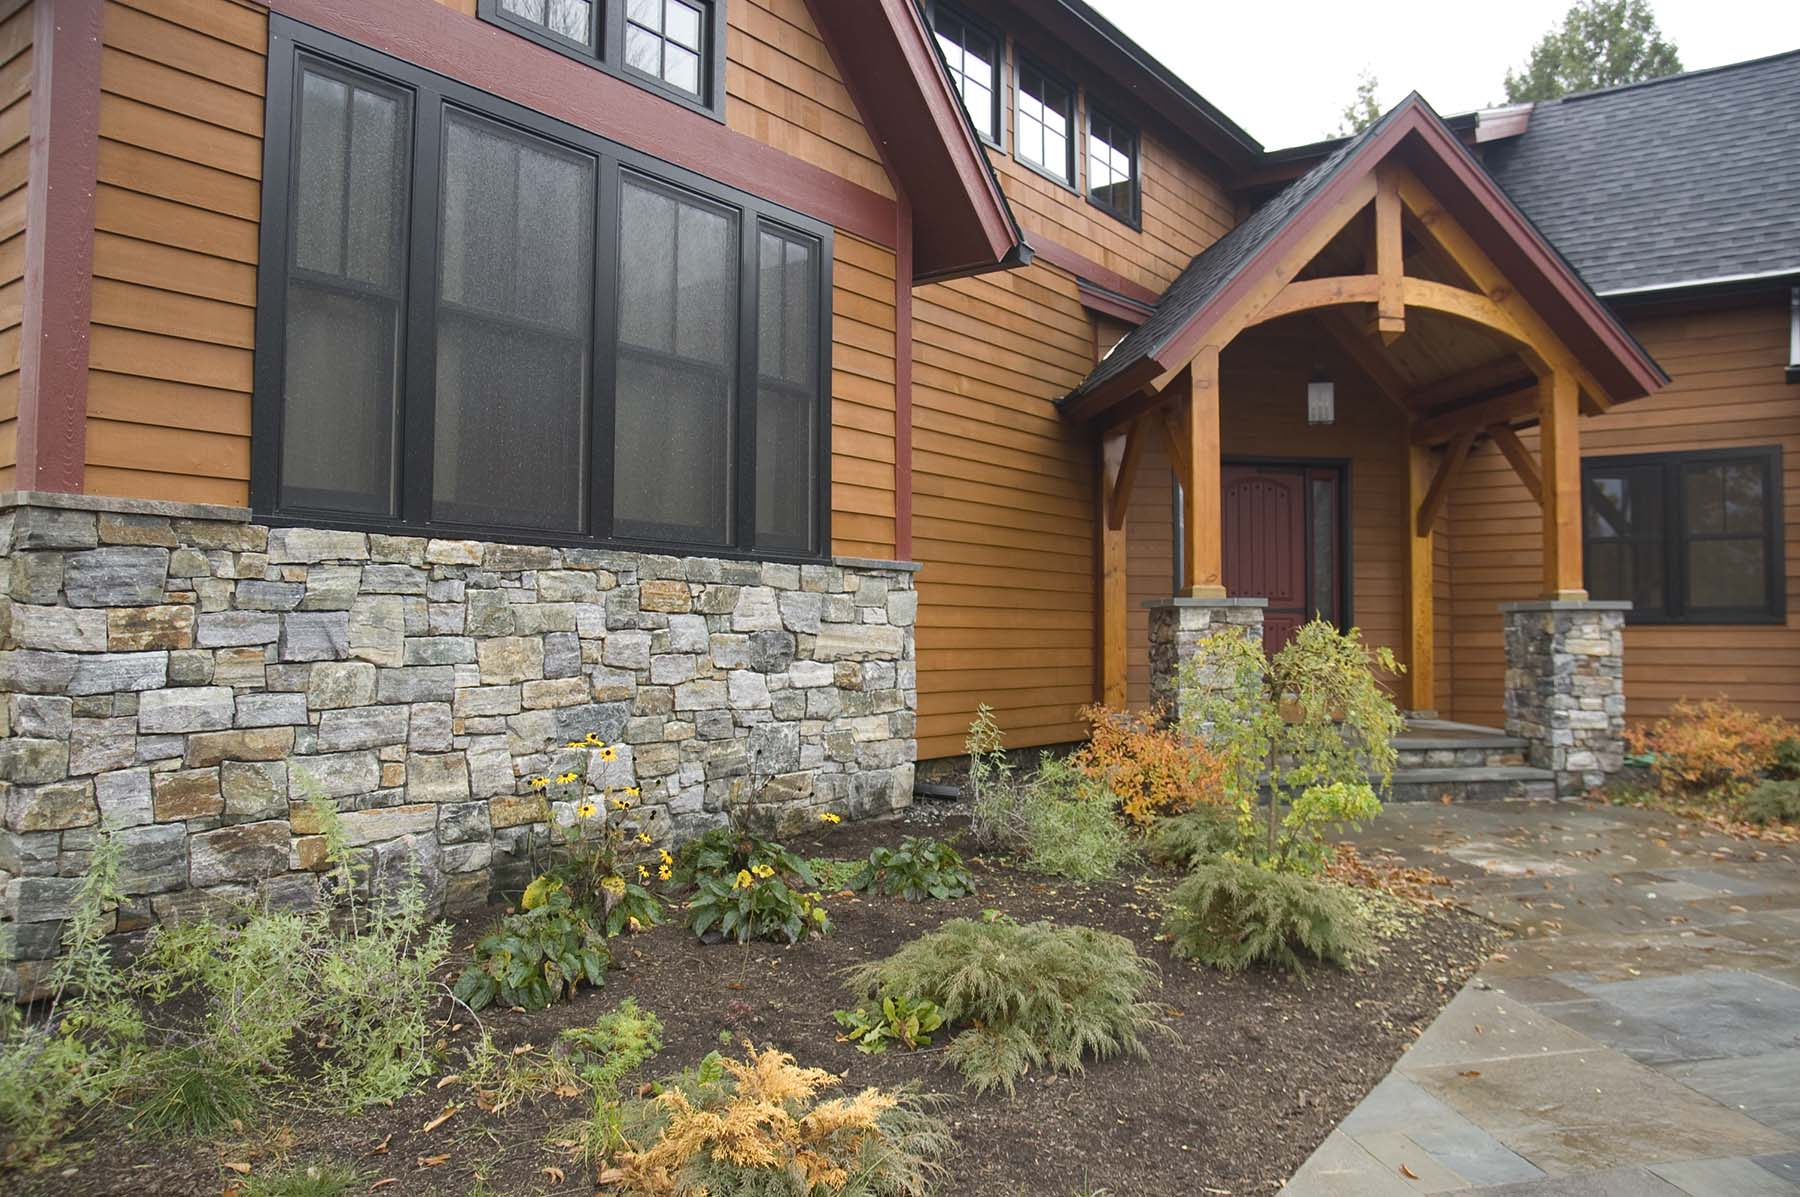 residential home with american granite natural stone exterior wall and porch